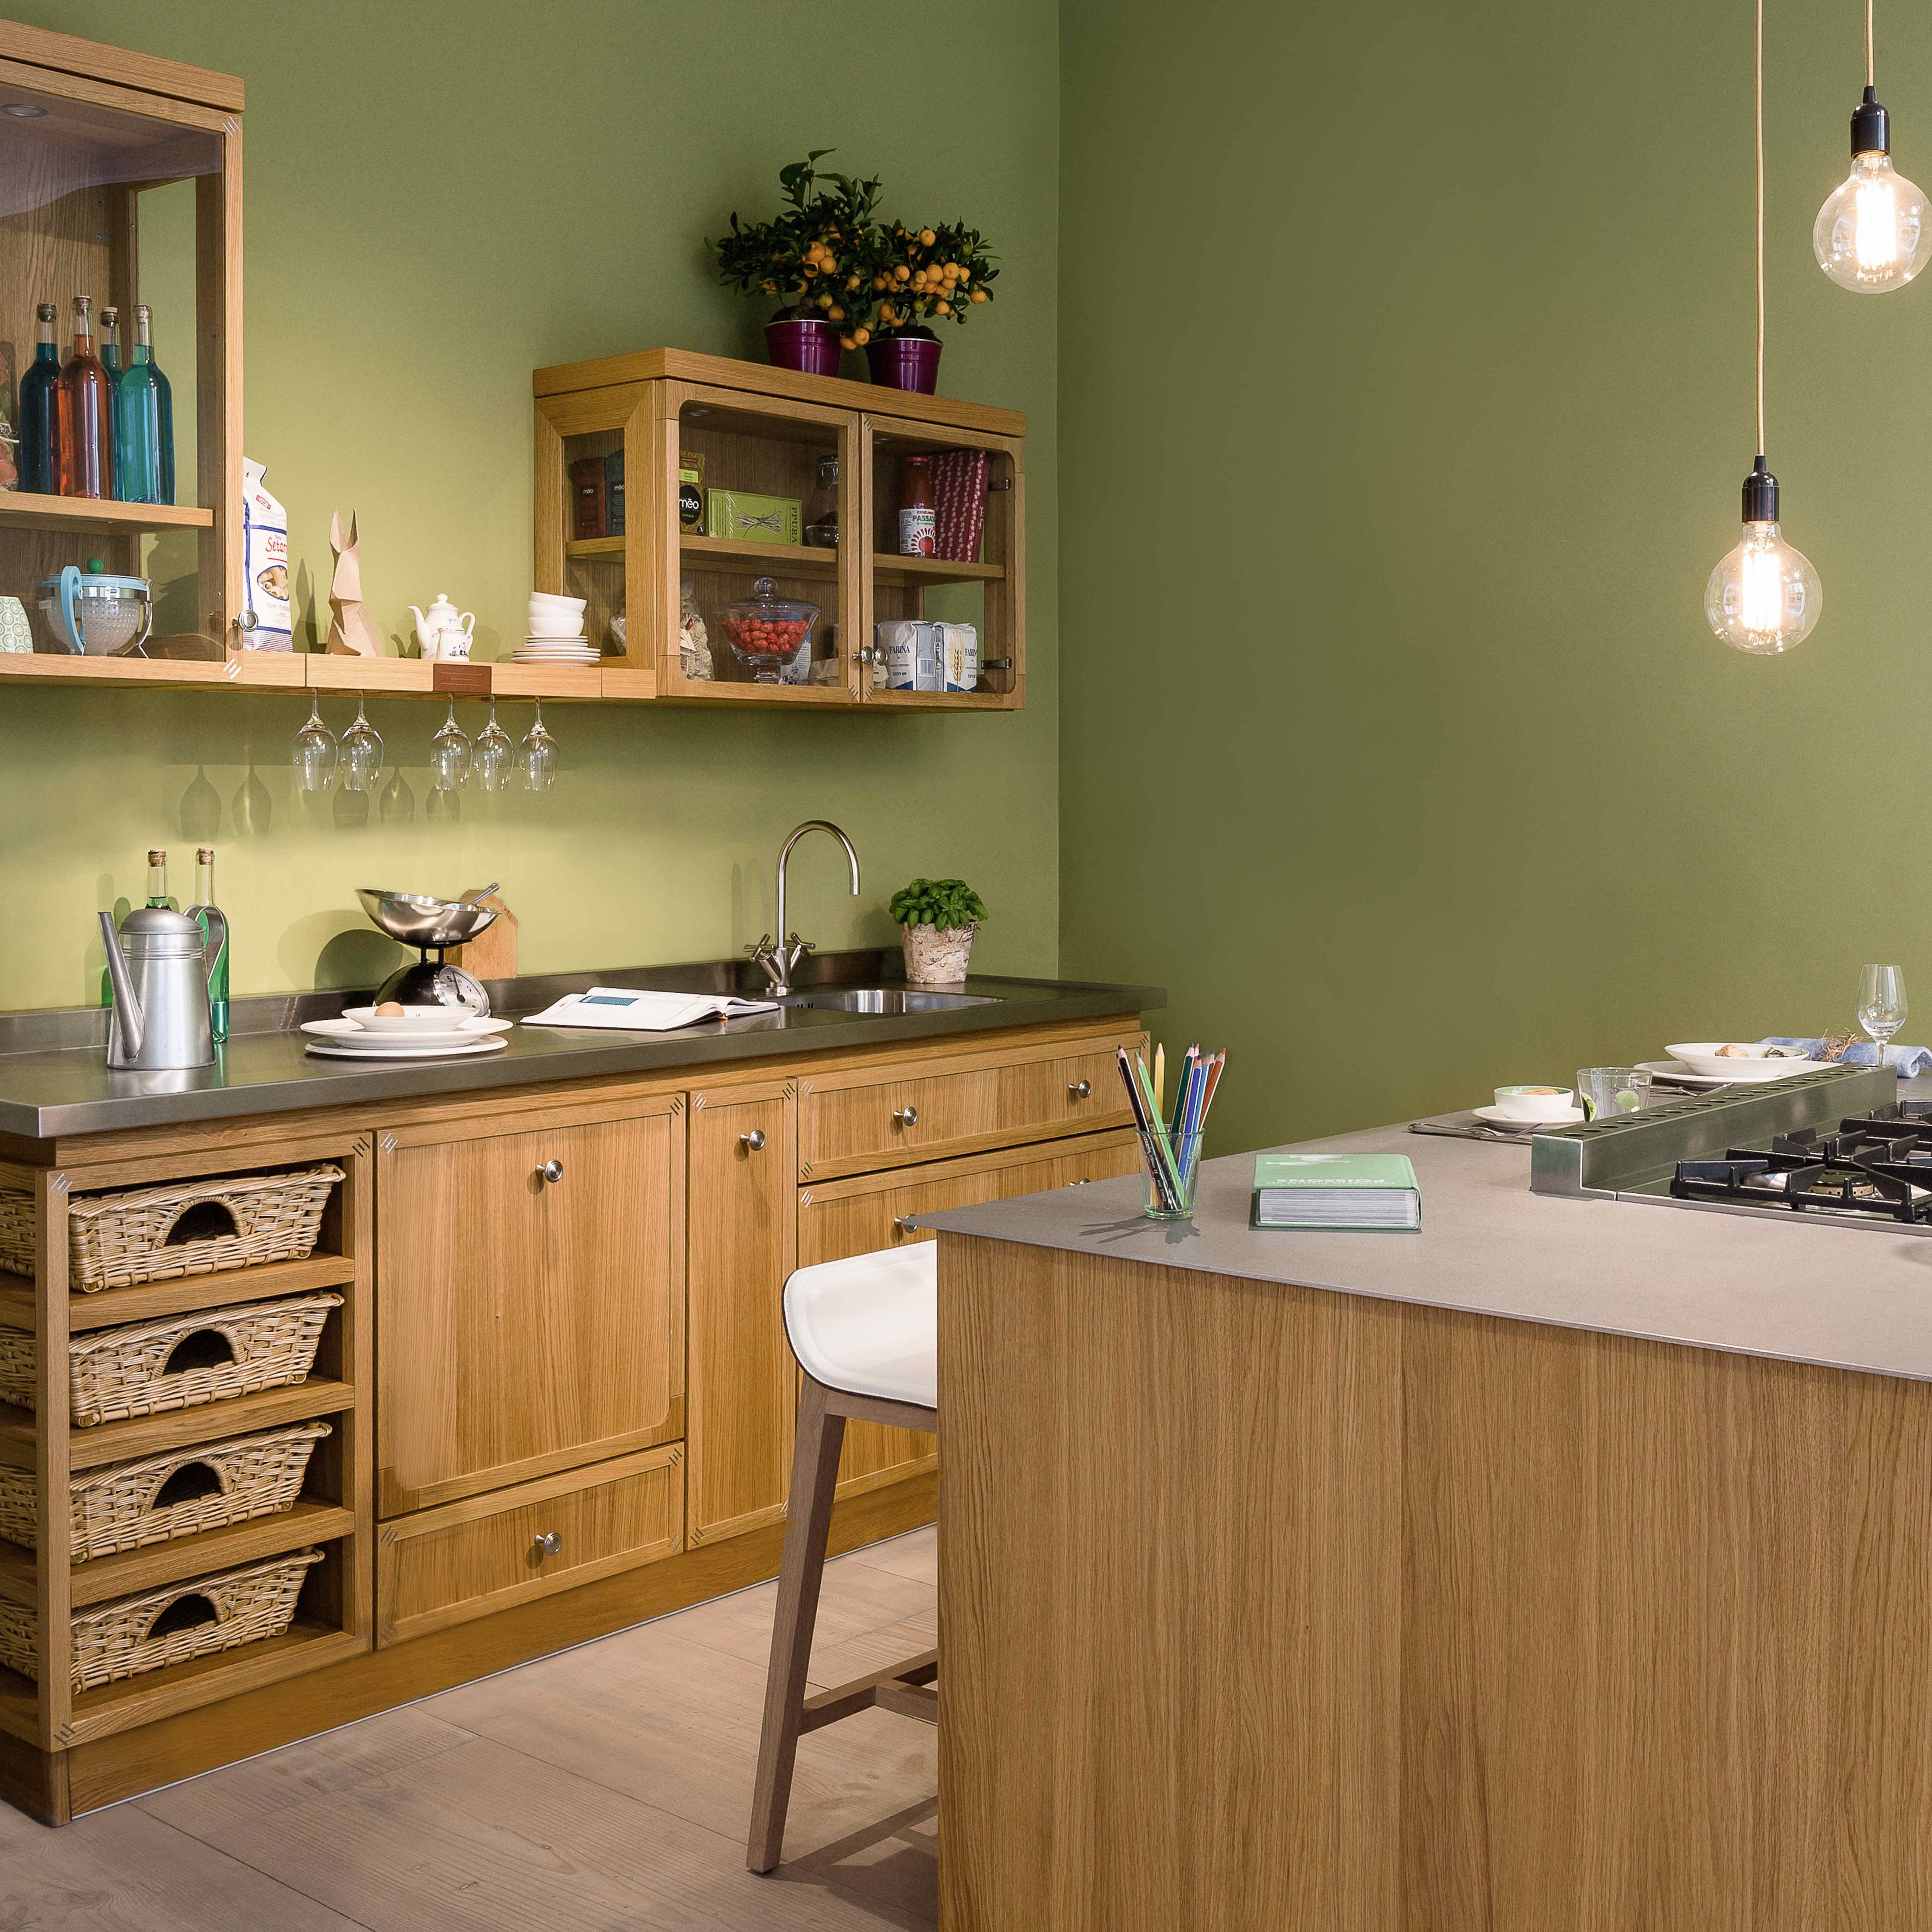 The French Company La Cornue Has Conceived A Solution That Allows To  Install A Cooking Island Also In Small Kitchens, That Generally Have Not  Enough Space ...